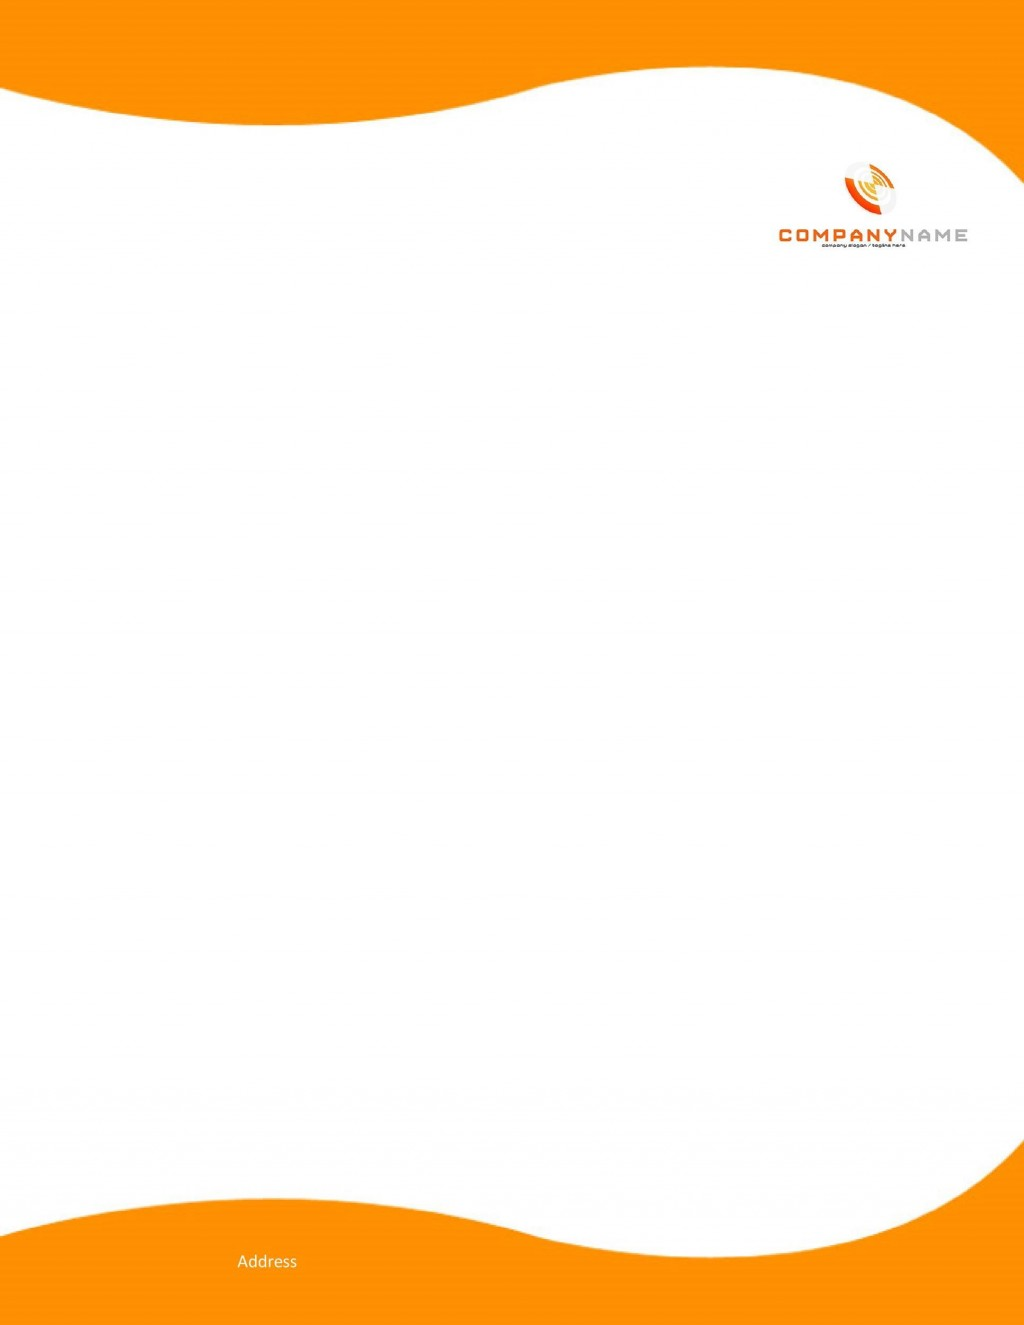 005 Unusual Letterhead Format In Word 2007 Free Download Highest Quality  Company TemplateLarge